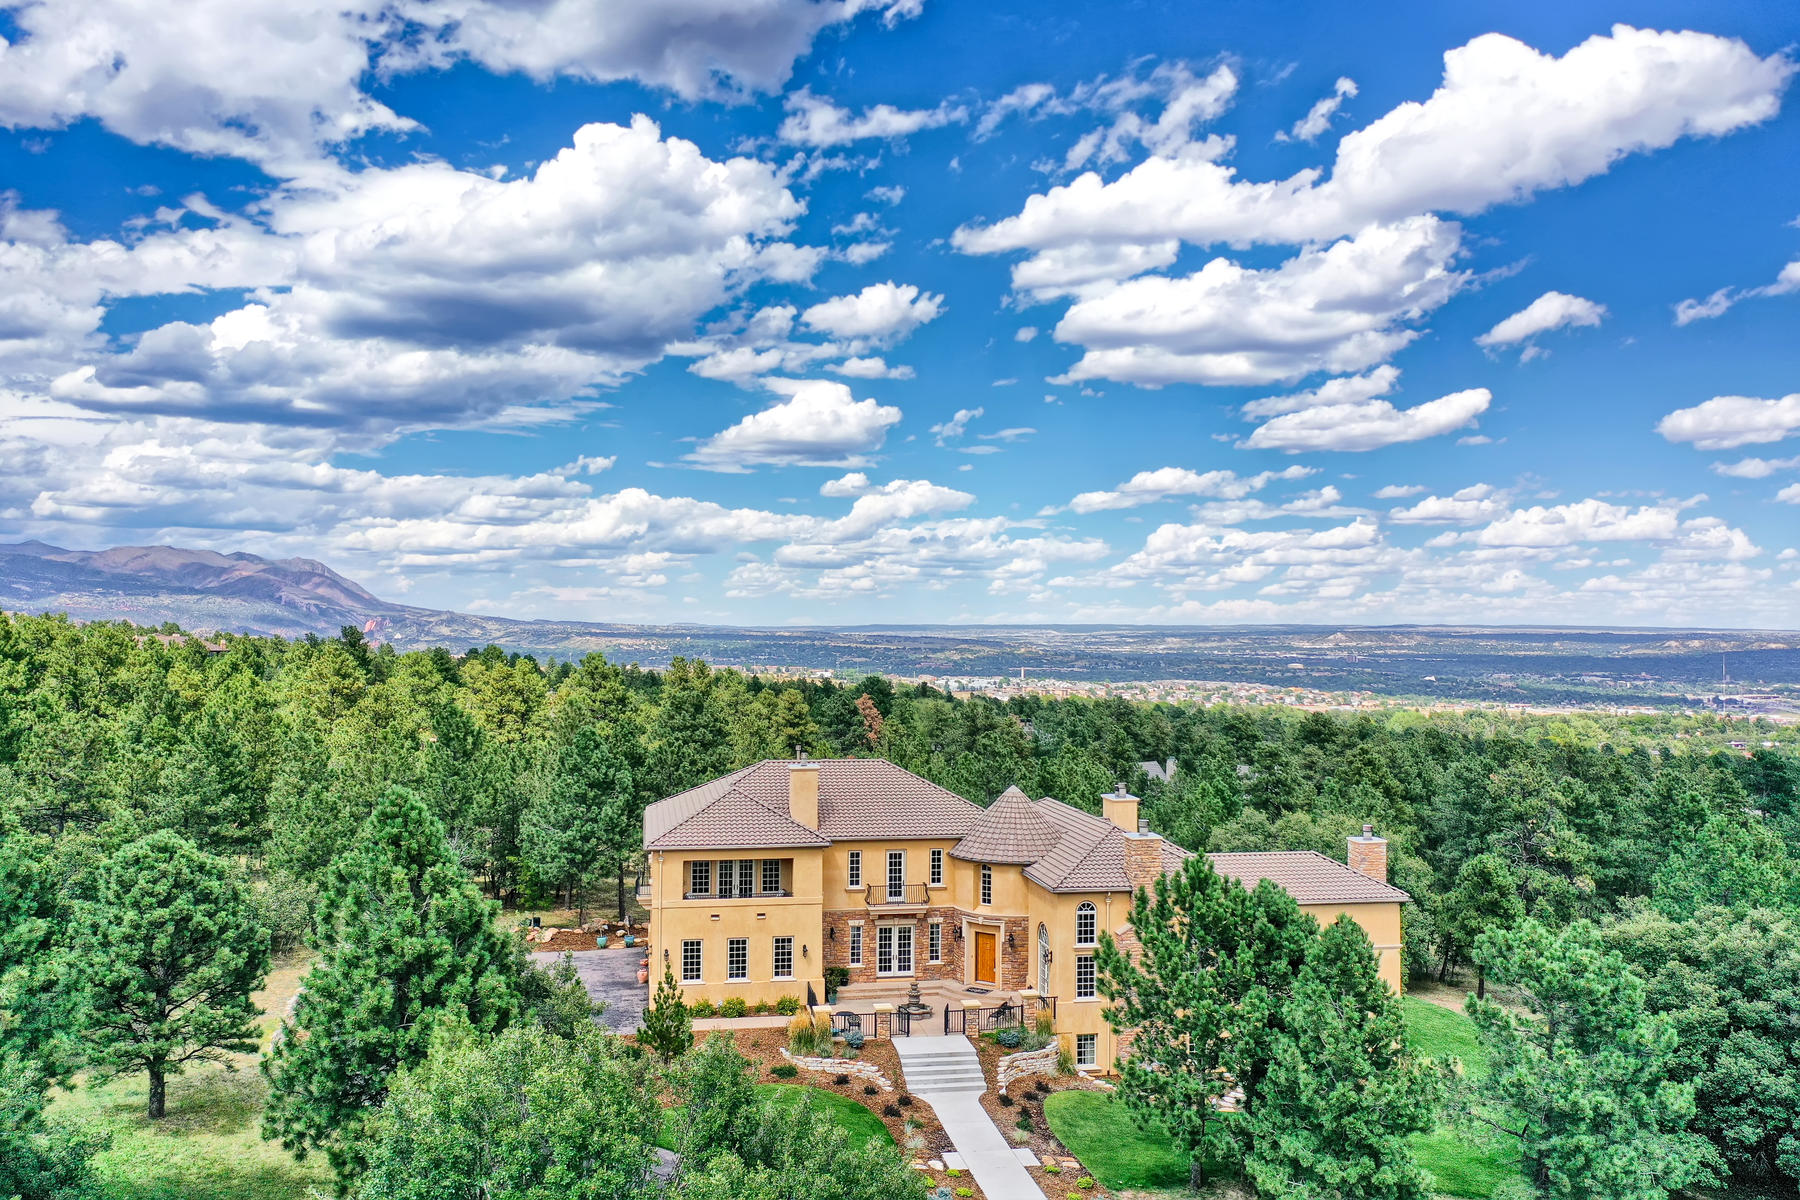 Single Family Homes for Sale at Nestled on 1.52 acres in the prestigious gated community of Stratton Preserve 1970 Fox Mountain Pt Colorado Springs, Colorado 80906 United States